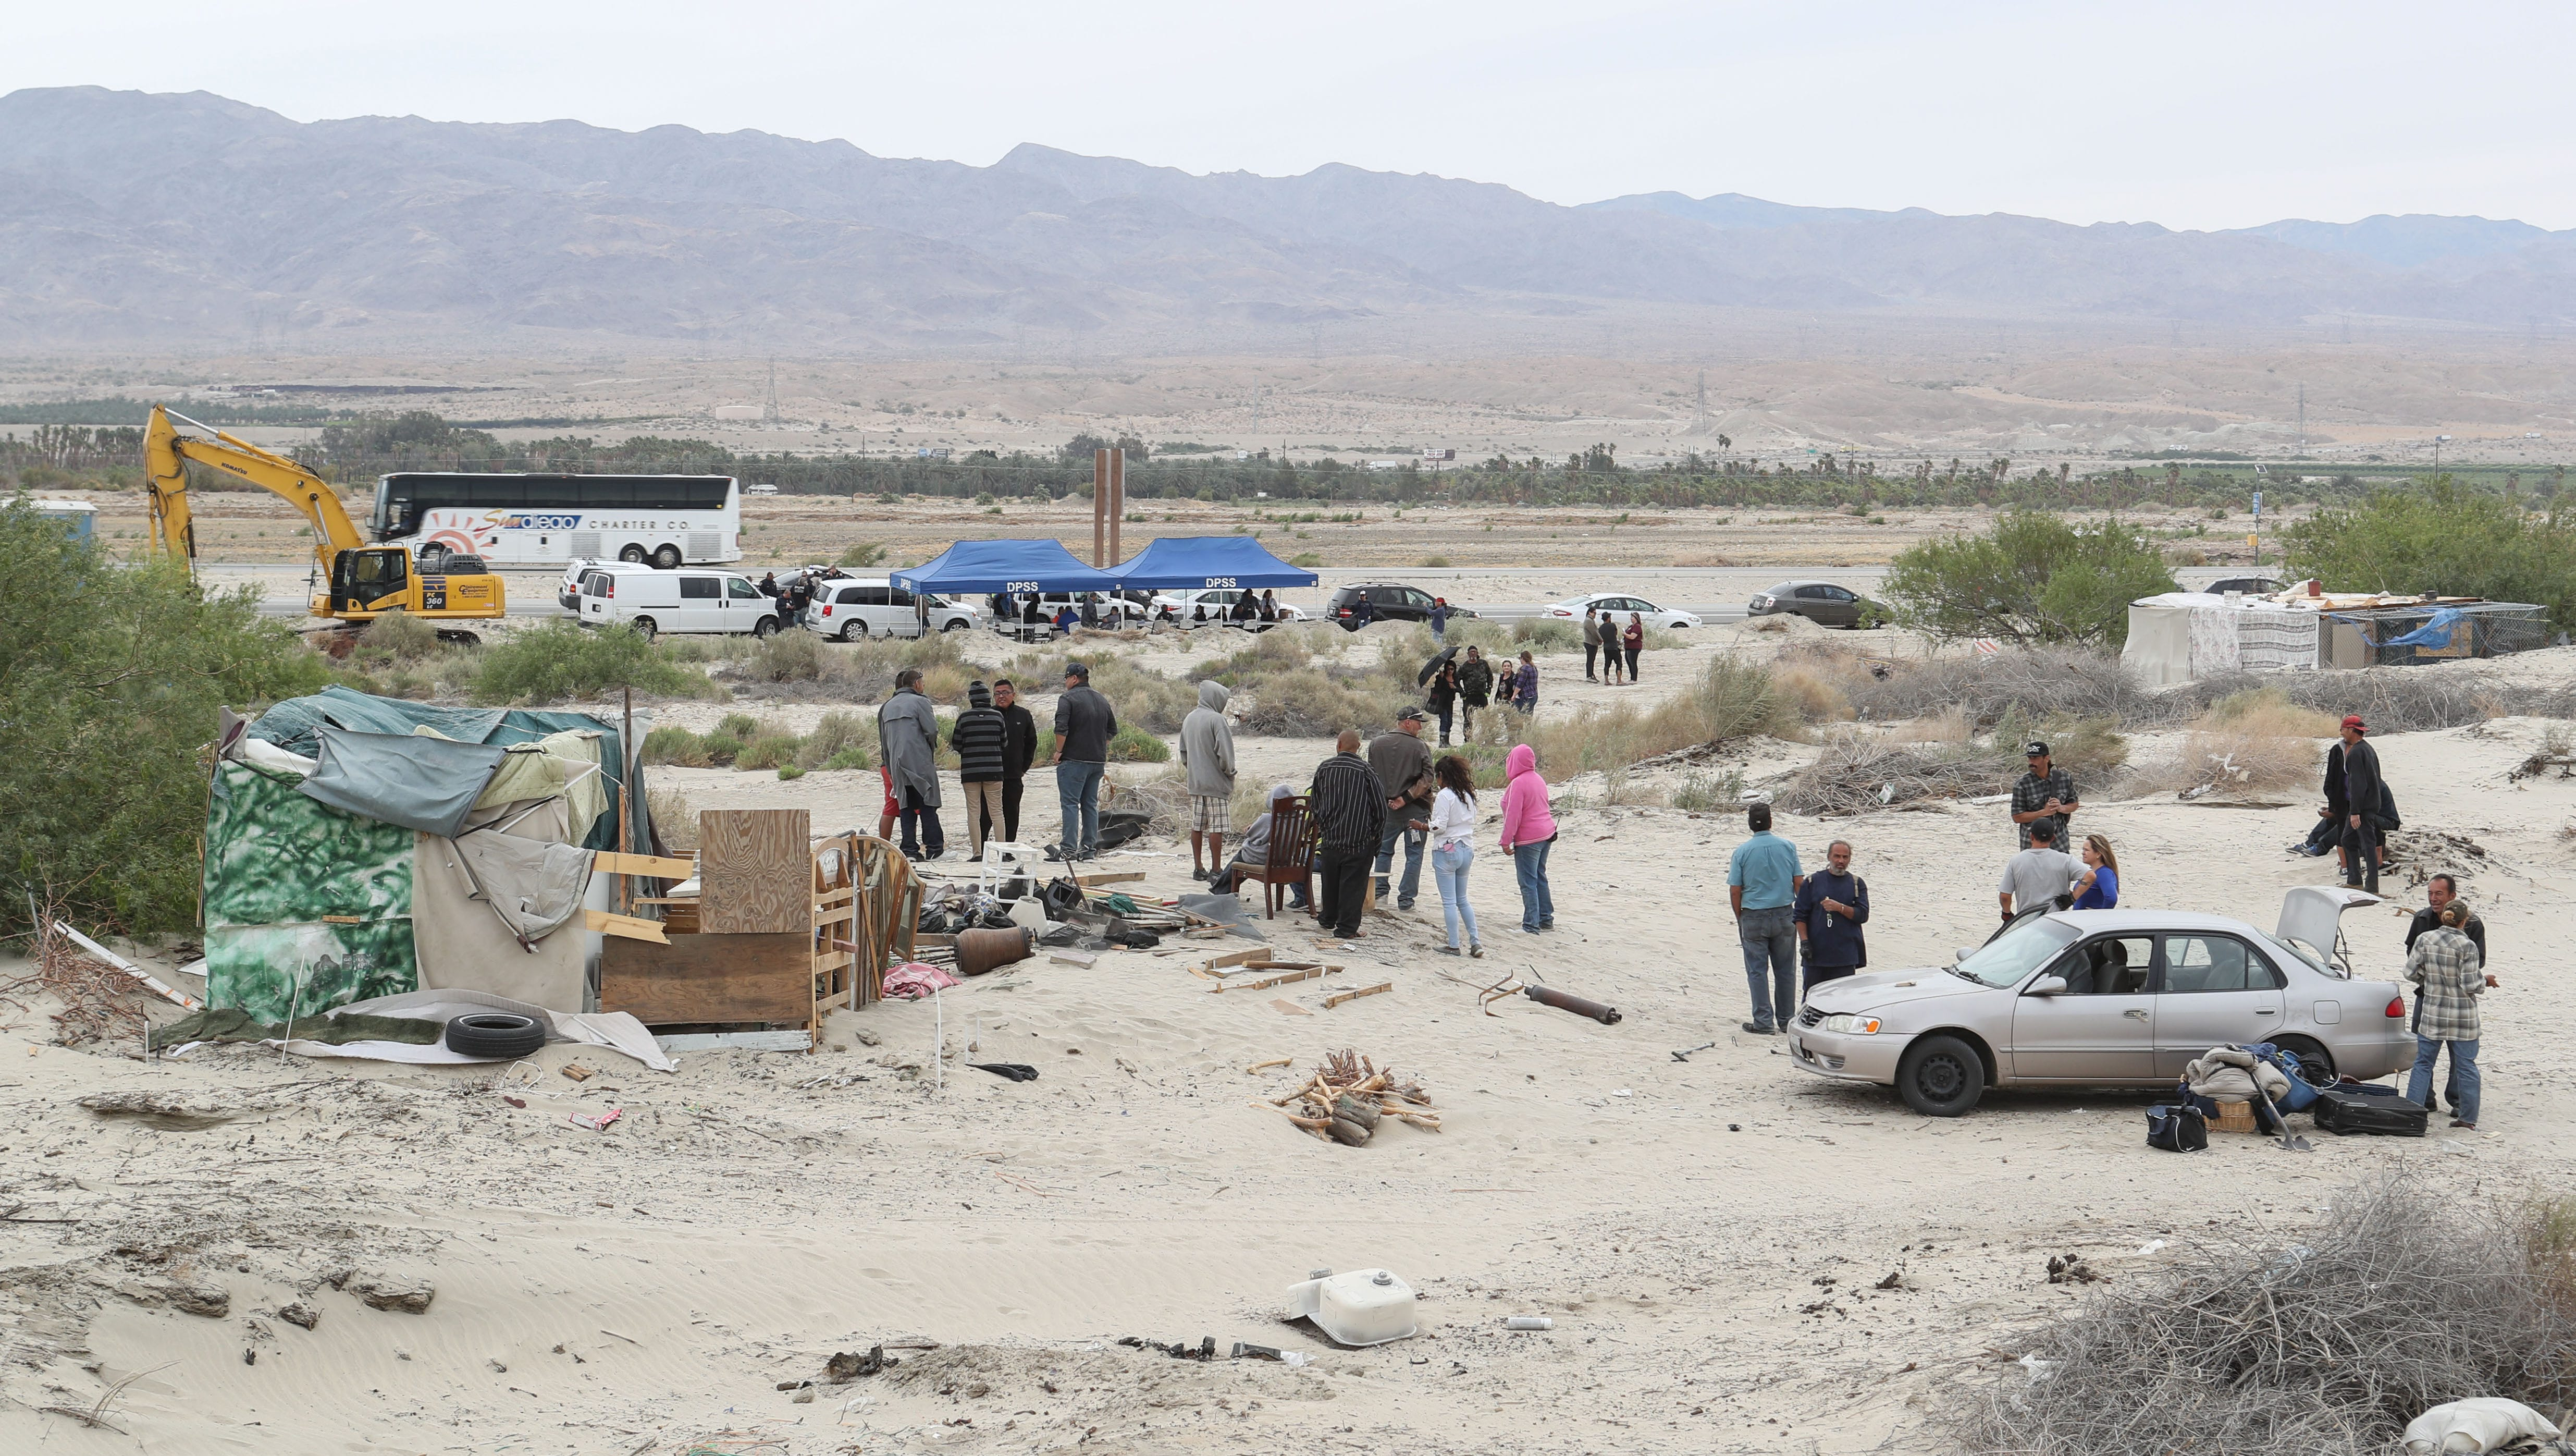 Homelessness in the valley: Caltrans razes Coachella homeless community